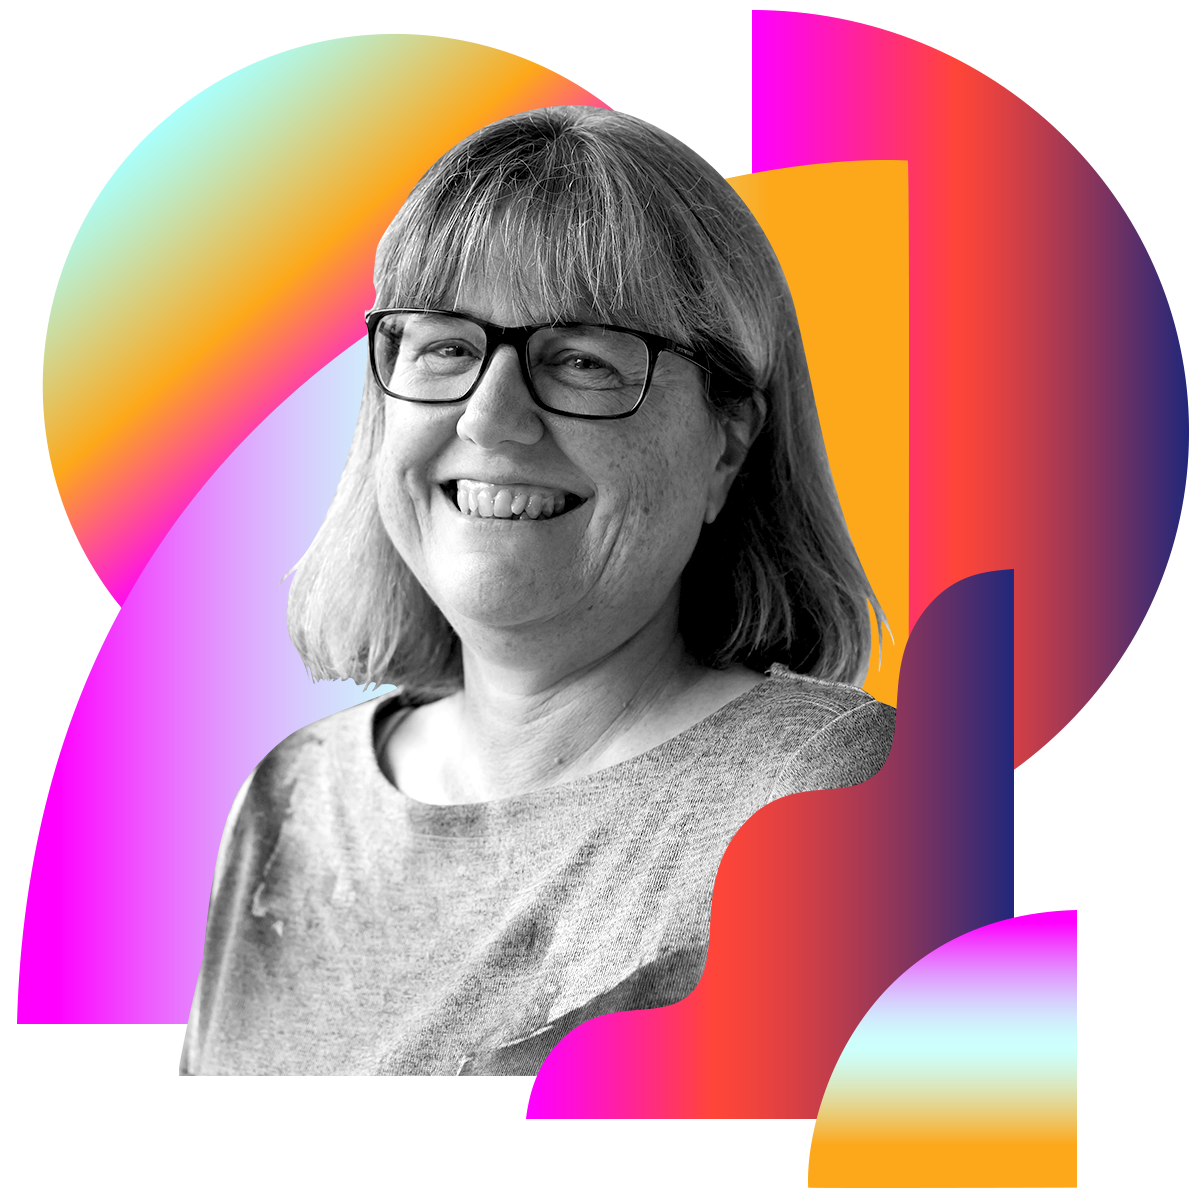 Photo illustration of Donna Strickland in black and white surrounded by colored gradients